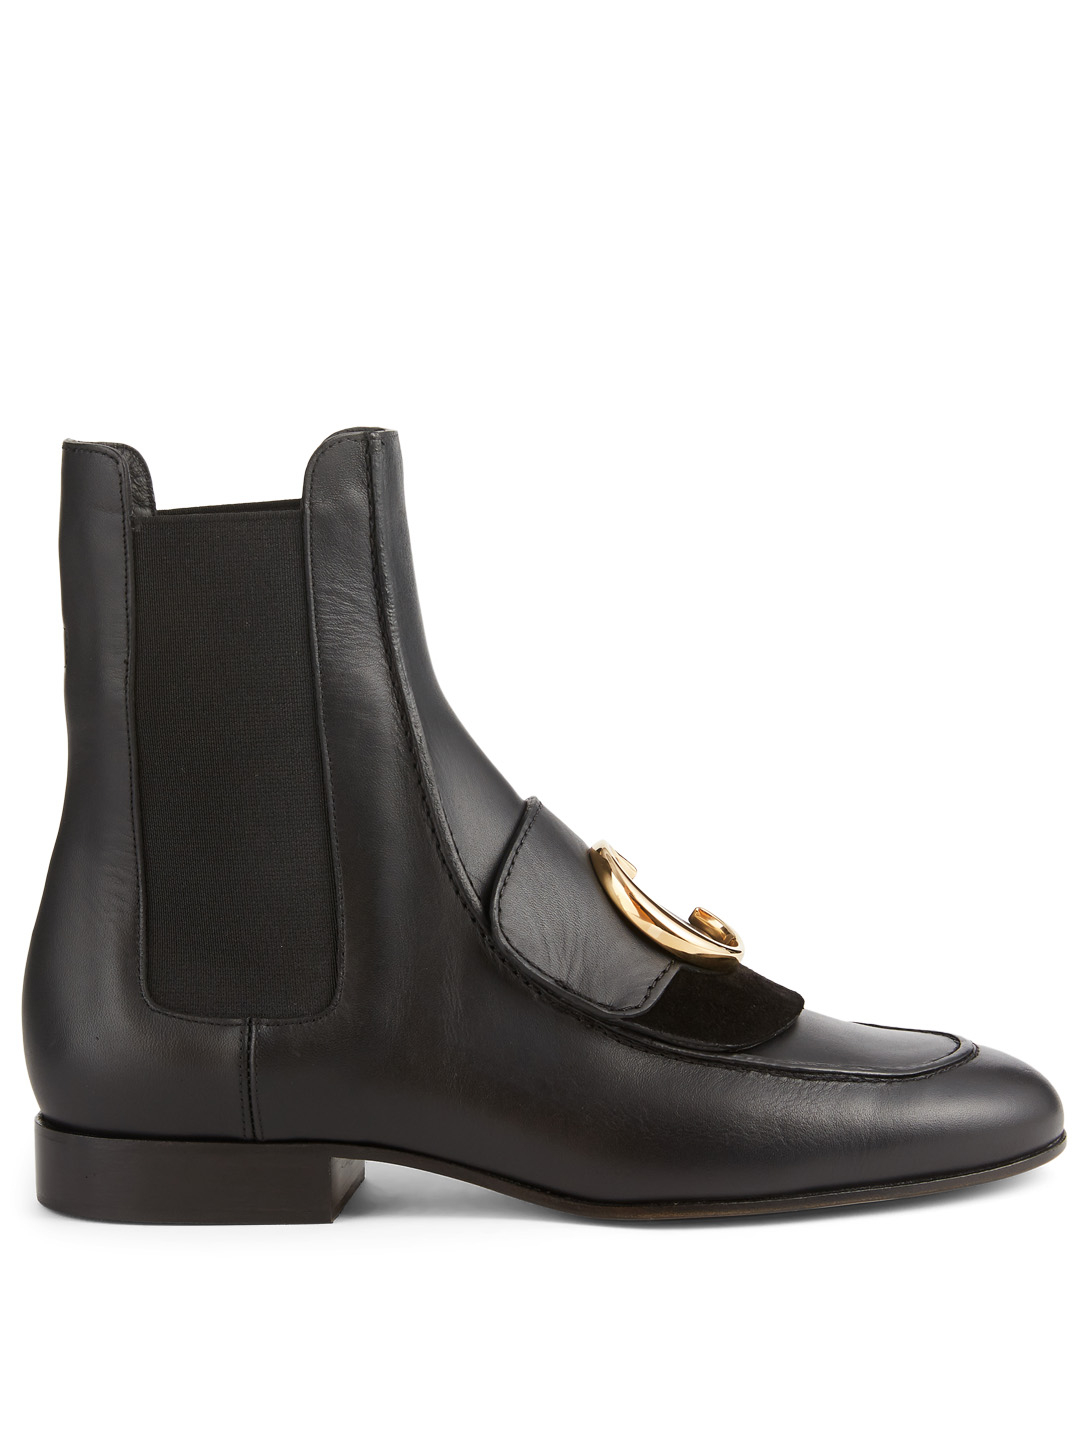 CHLOÉ Chloé C Leather Chelsea Boots Women's Black